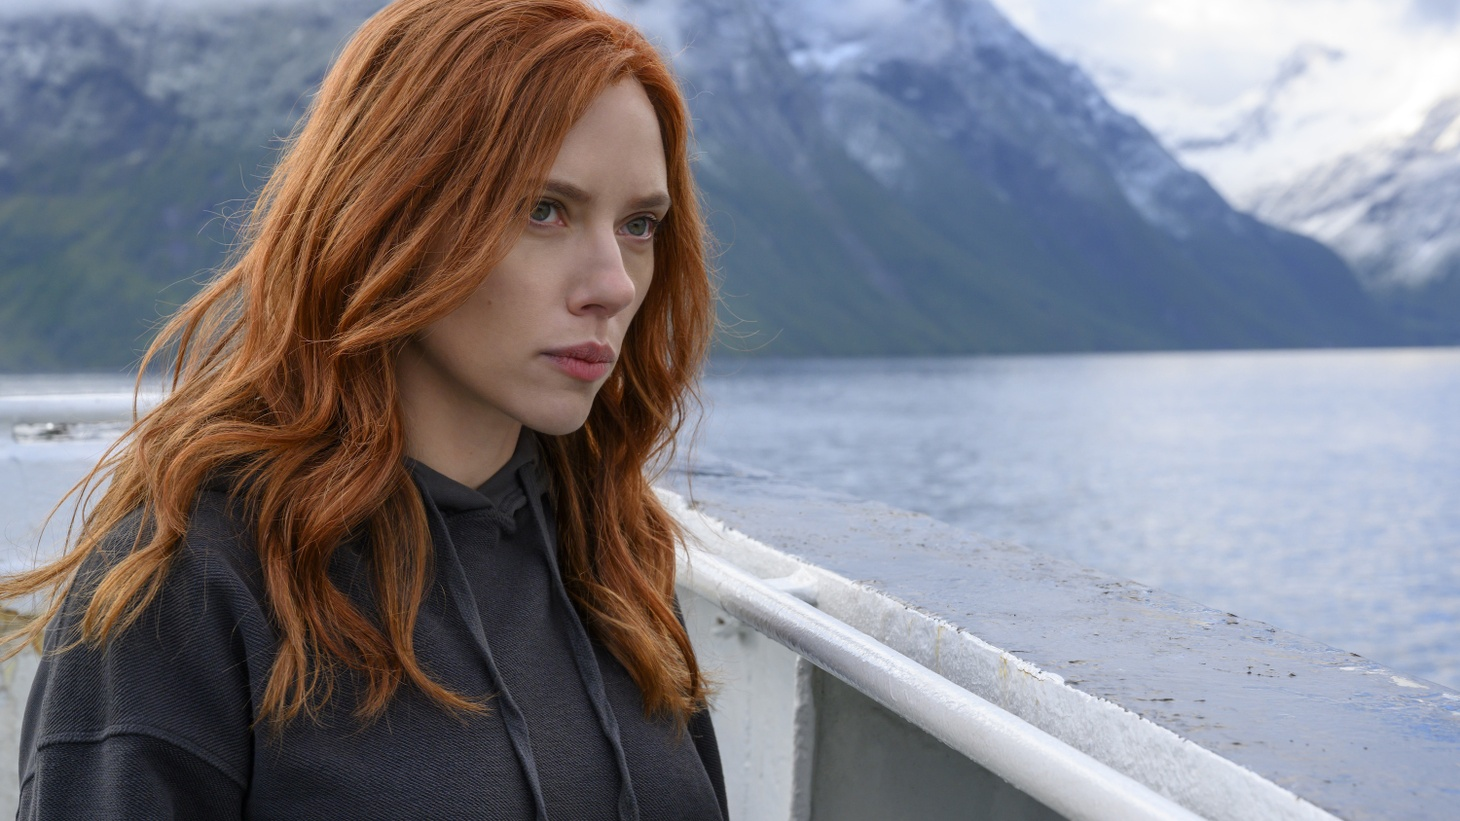 """Scarlett Johansson stars in Disney's """"Black Widow."""" In a new lawsuit, the actress says Disney's decision to put the film on streaming cost her $50 million in box office bonuses."""